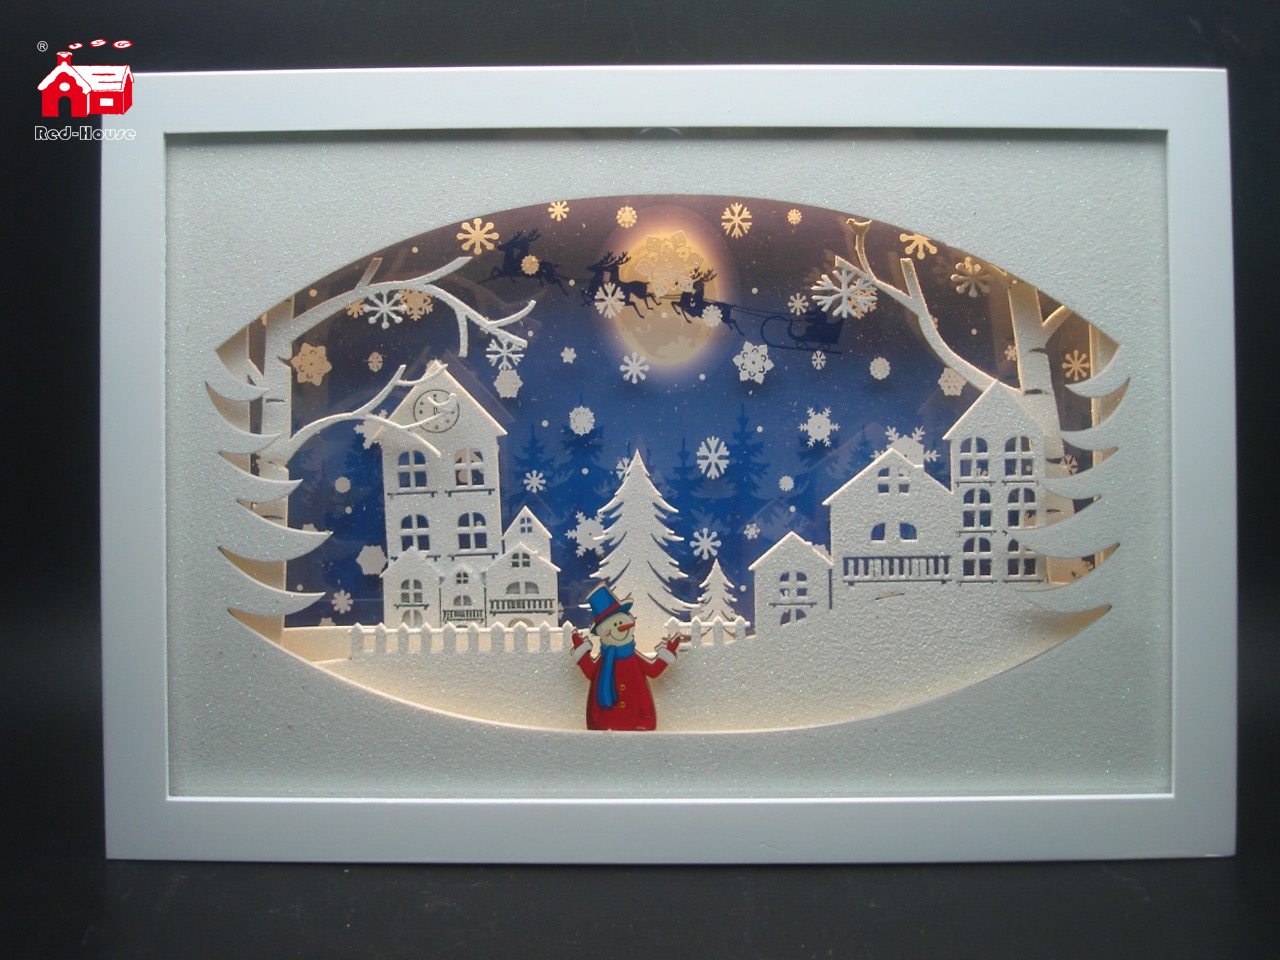 Christmas Decorative Horizontal Rectangle Frame Music Box As Led Home Decoration with Snow Flake Moving And Laser Cut Christmas Scene From Christmas Decoration Supplies